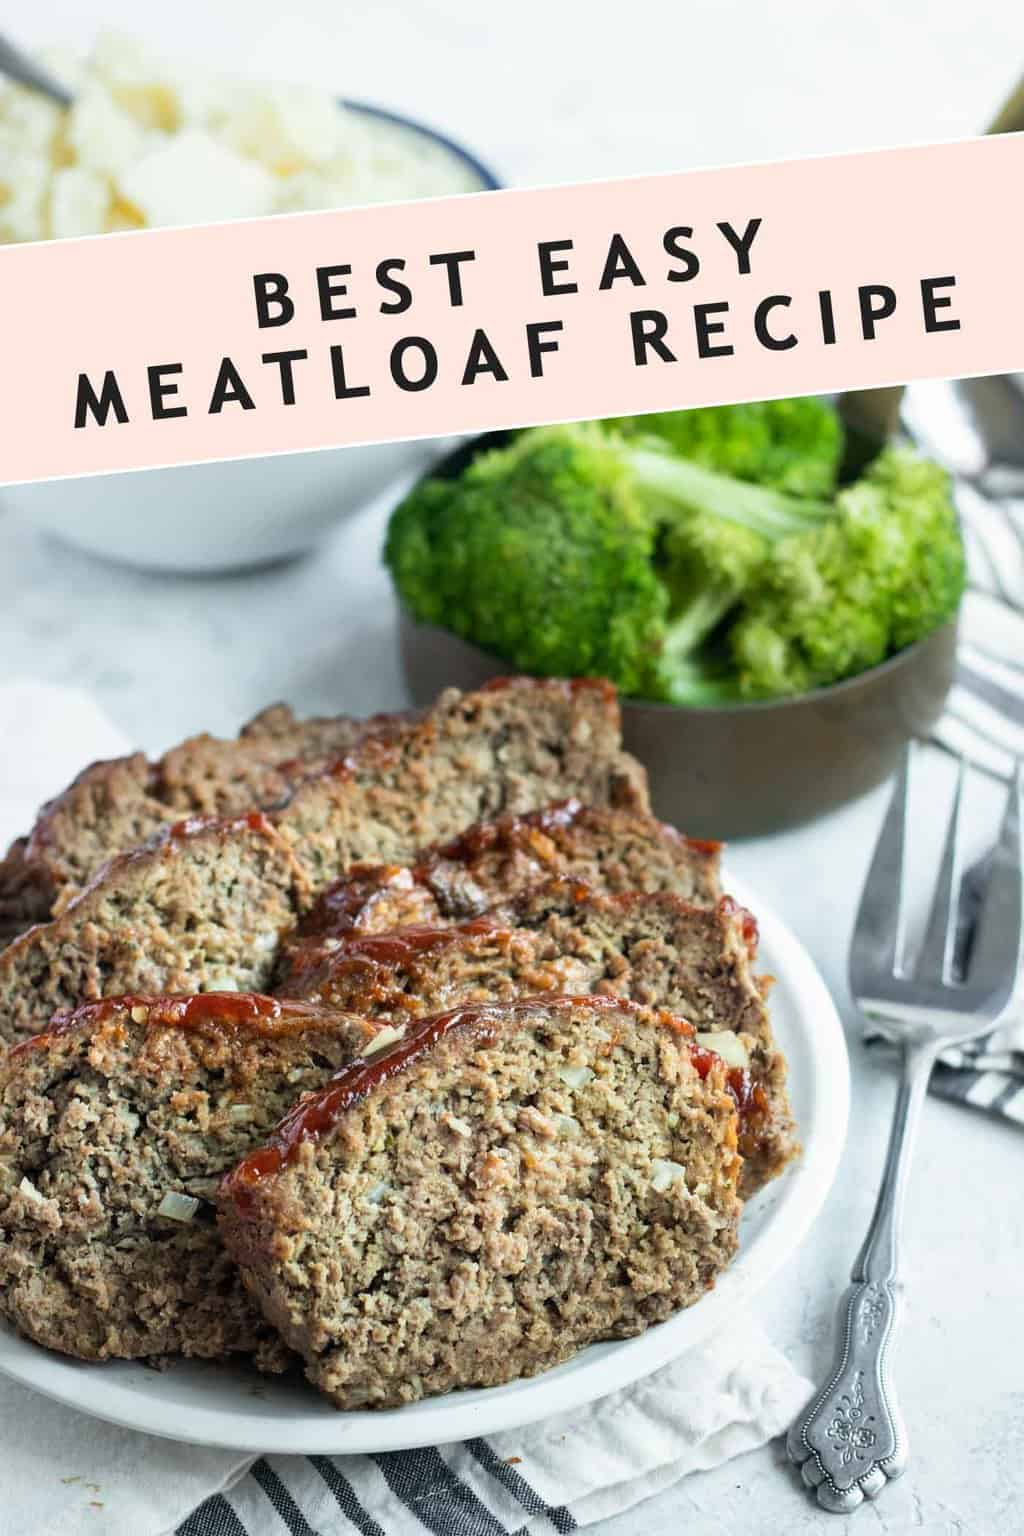 photo of the recipe card for the best easy meatloaf by top Houston lifestyle blogger Ashley Rose of Sugar & Cloth